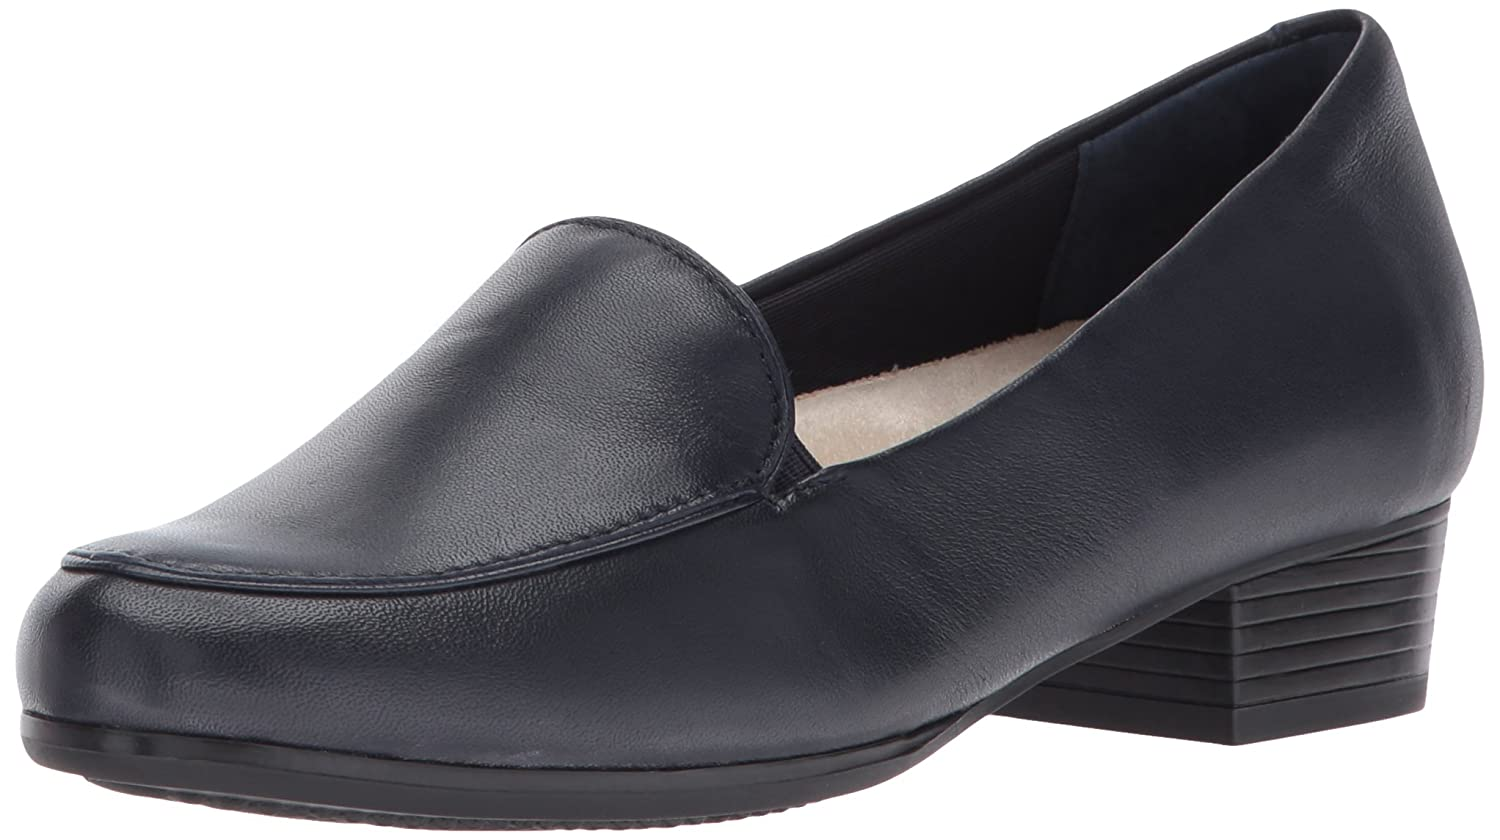 Trotters Women's Monarch Flat B01N1V24GS 10.5 W US|French Navy